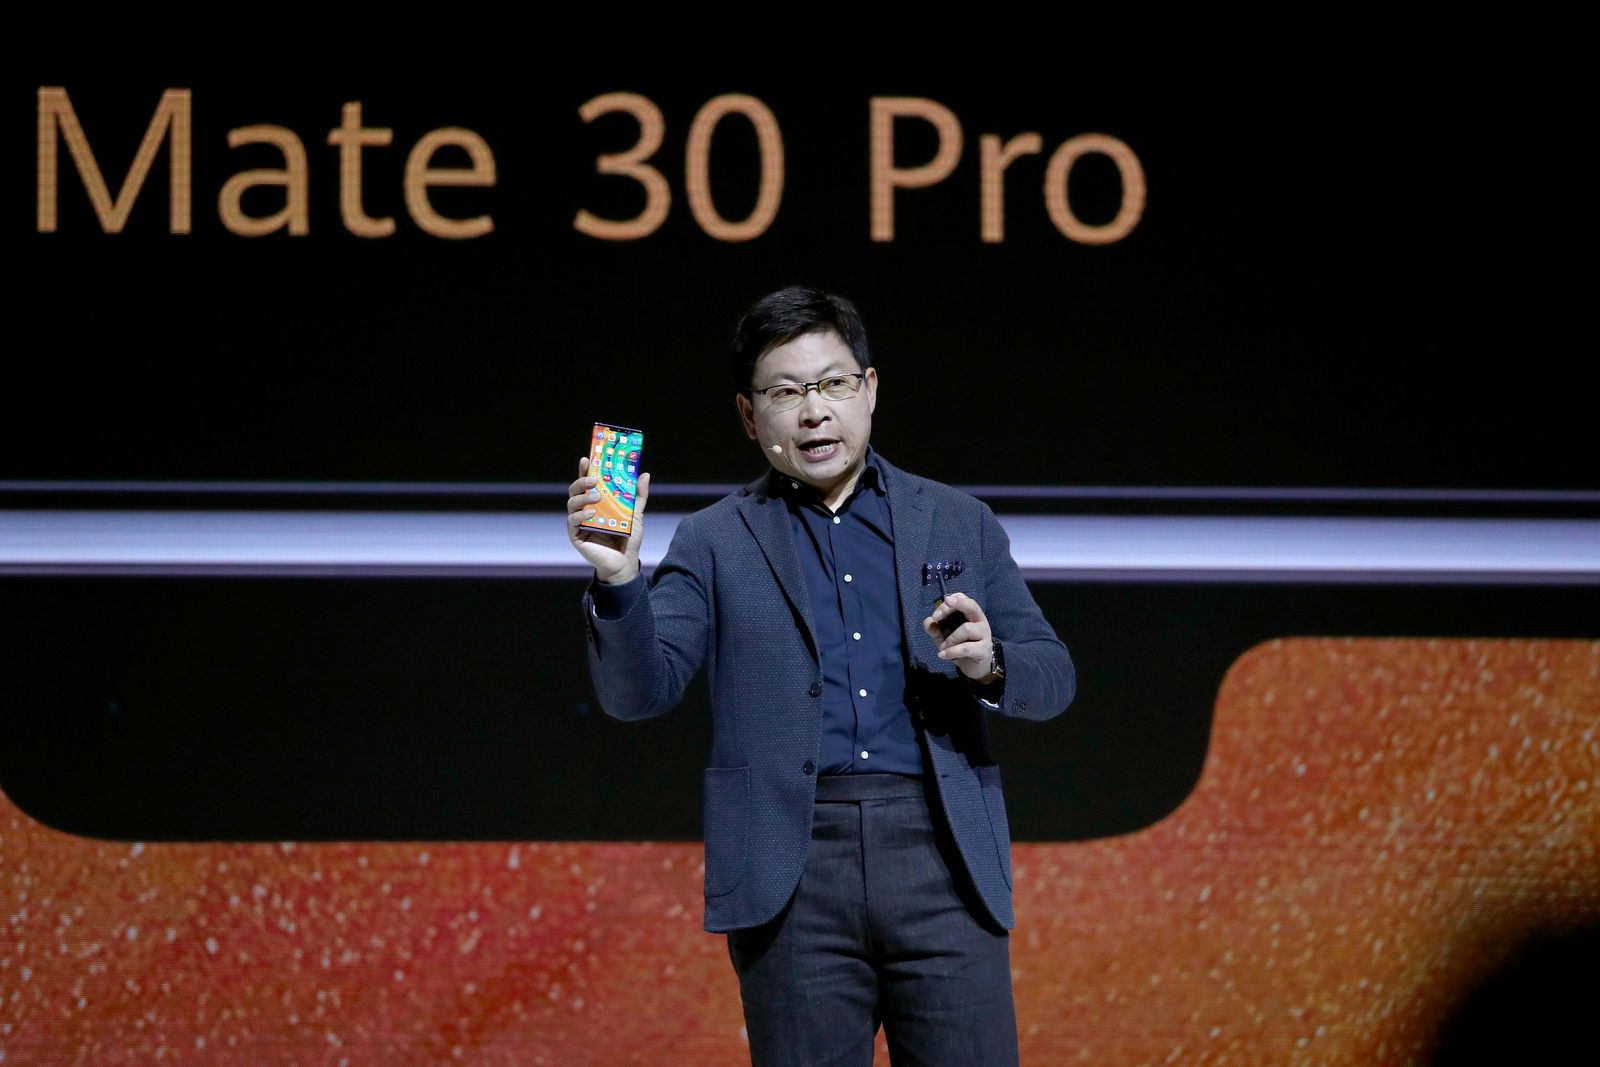 Richard Yu, CEO of the Huawei consumer business group, presents the new 'Mate 30 Pro' smartphone during an event in Munich, Germany, Thursday, Sept. 19, 2019. (AP Photo/Matthias Schrader)